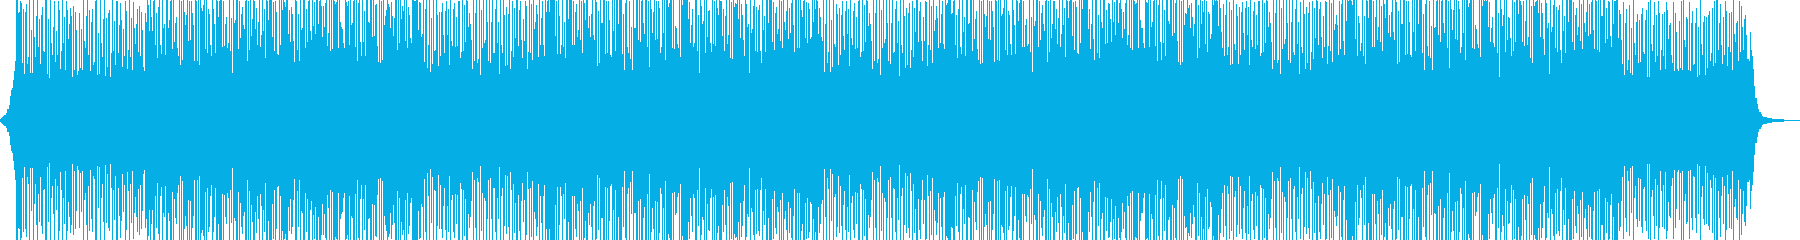 Corporate VP, refreshing, IT's reproduced waveform